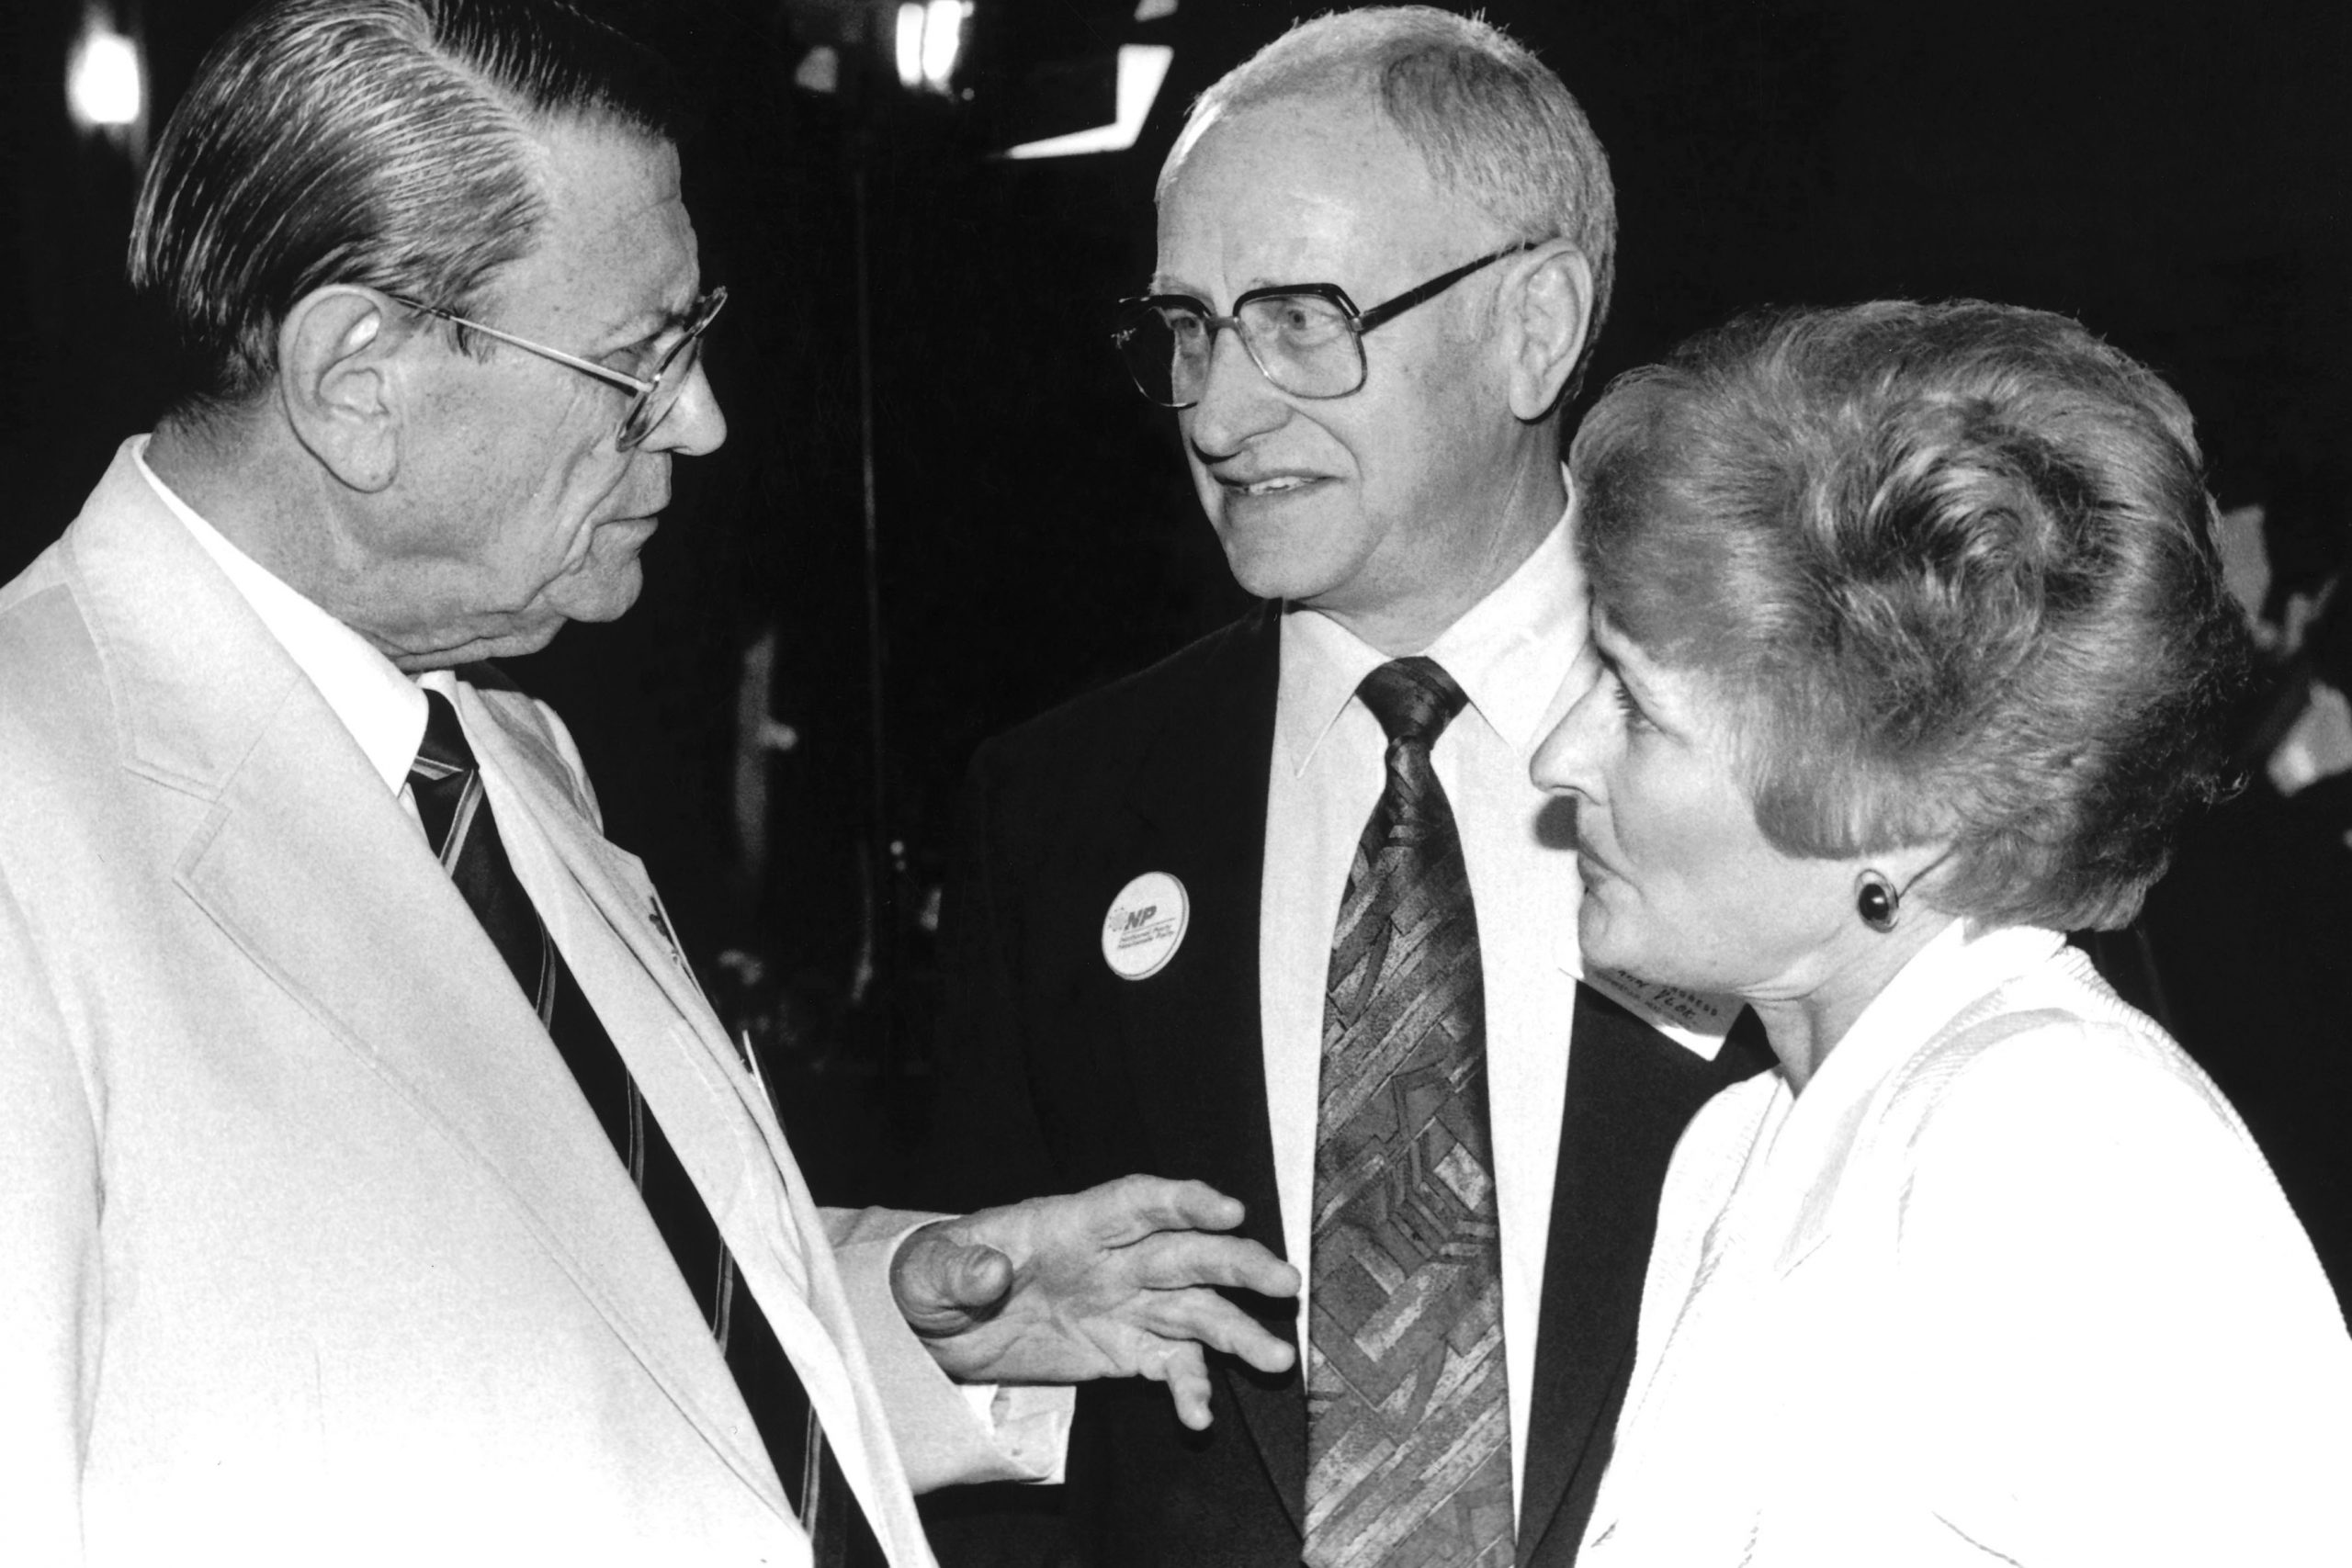 September 1993: From left, former minister of manpower utilisation Fanie Botha with apartheid minister of law and order Adriaan Vlok and his wife. (Photograph by Reuters)